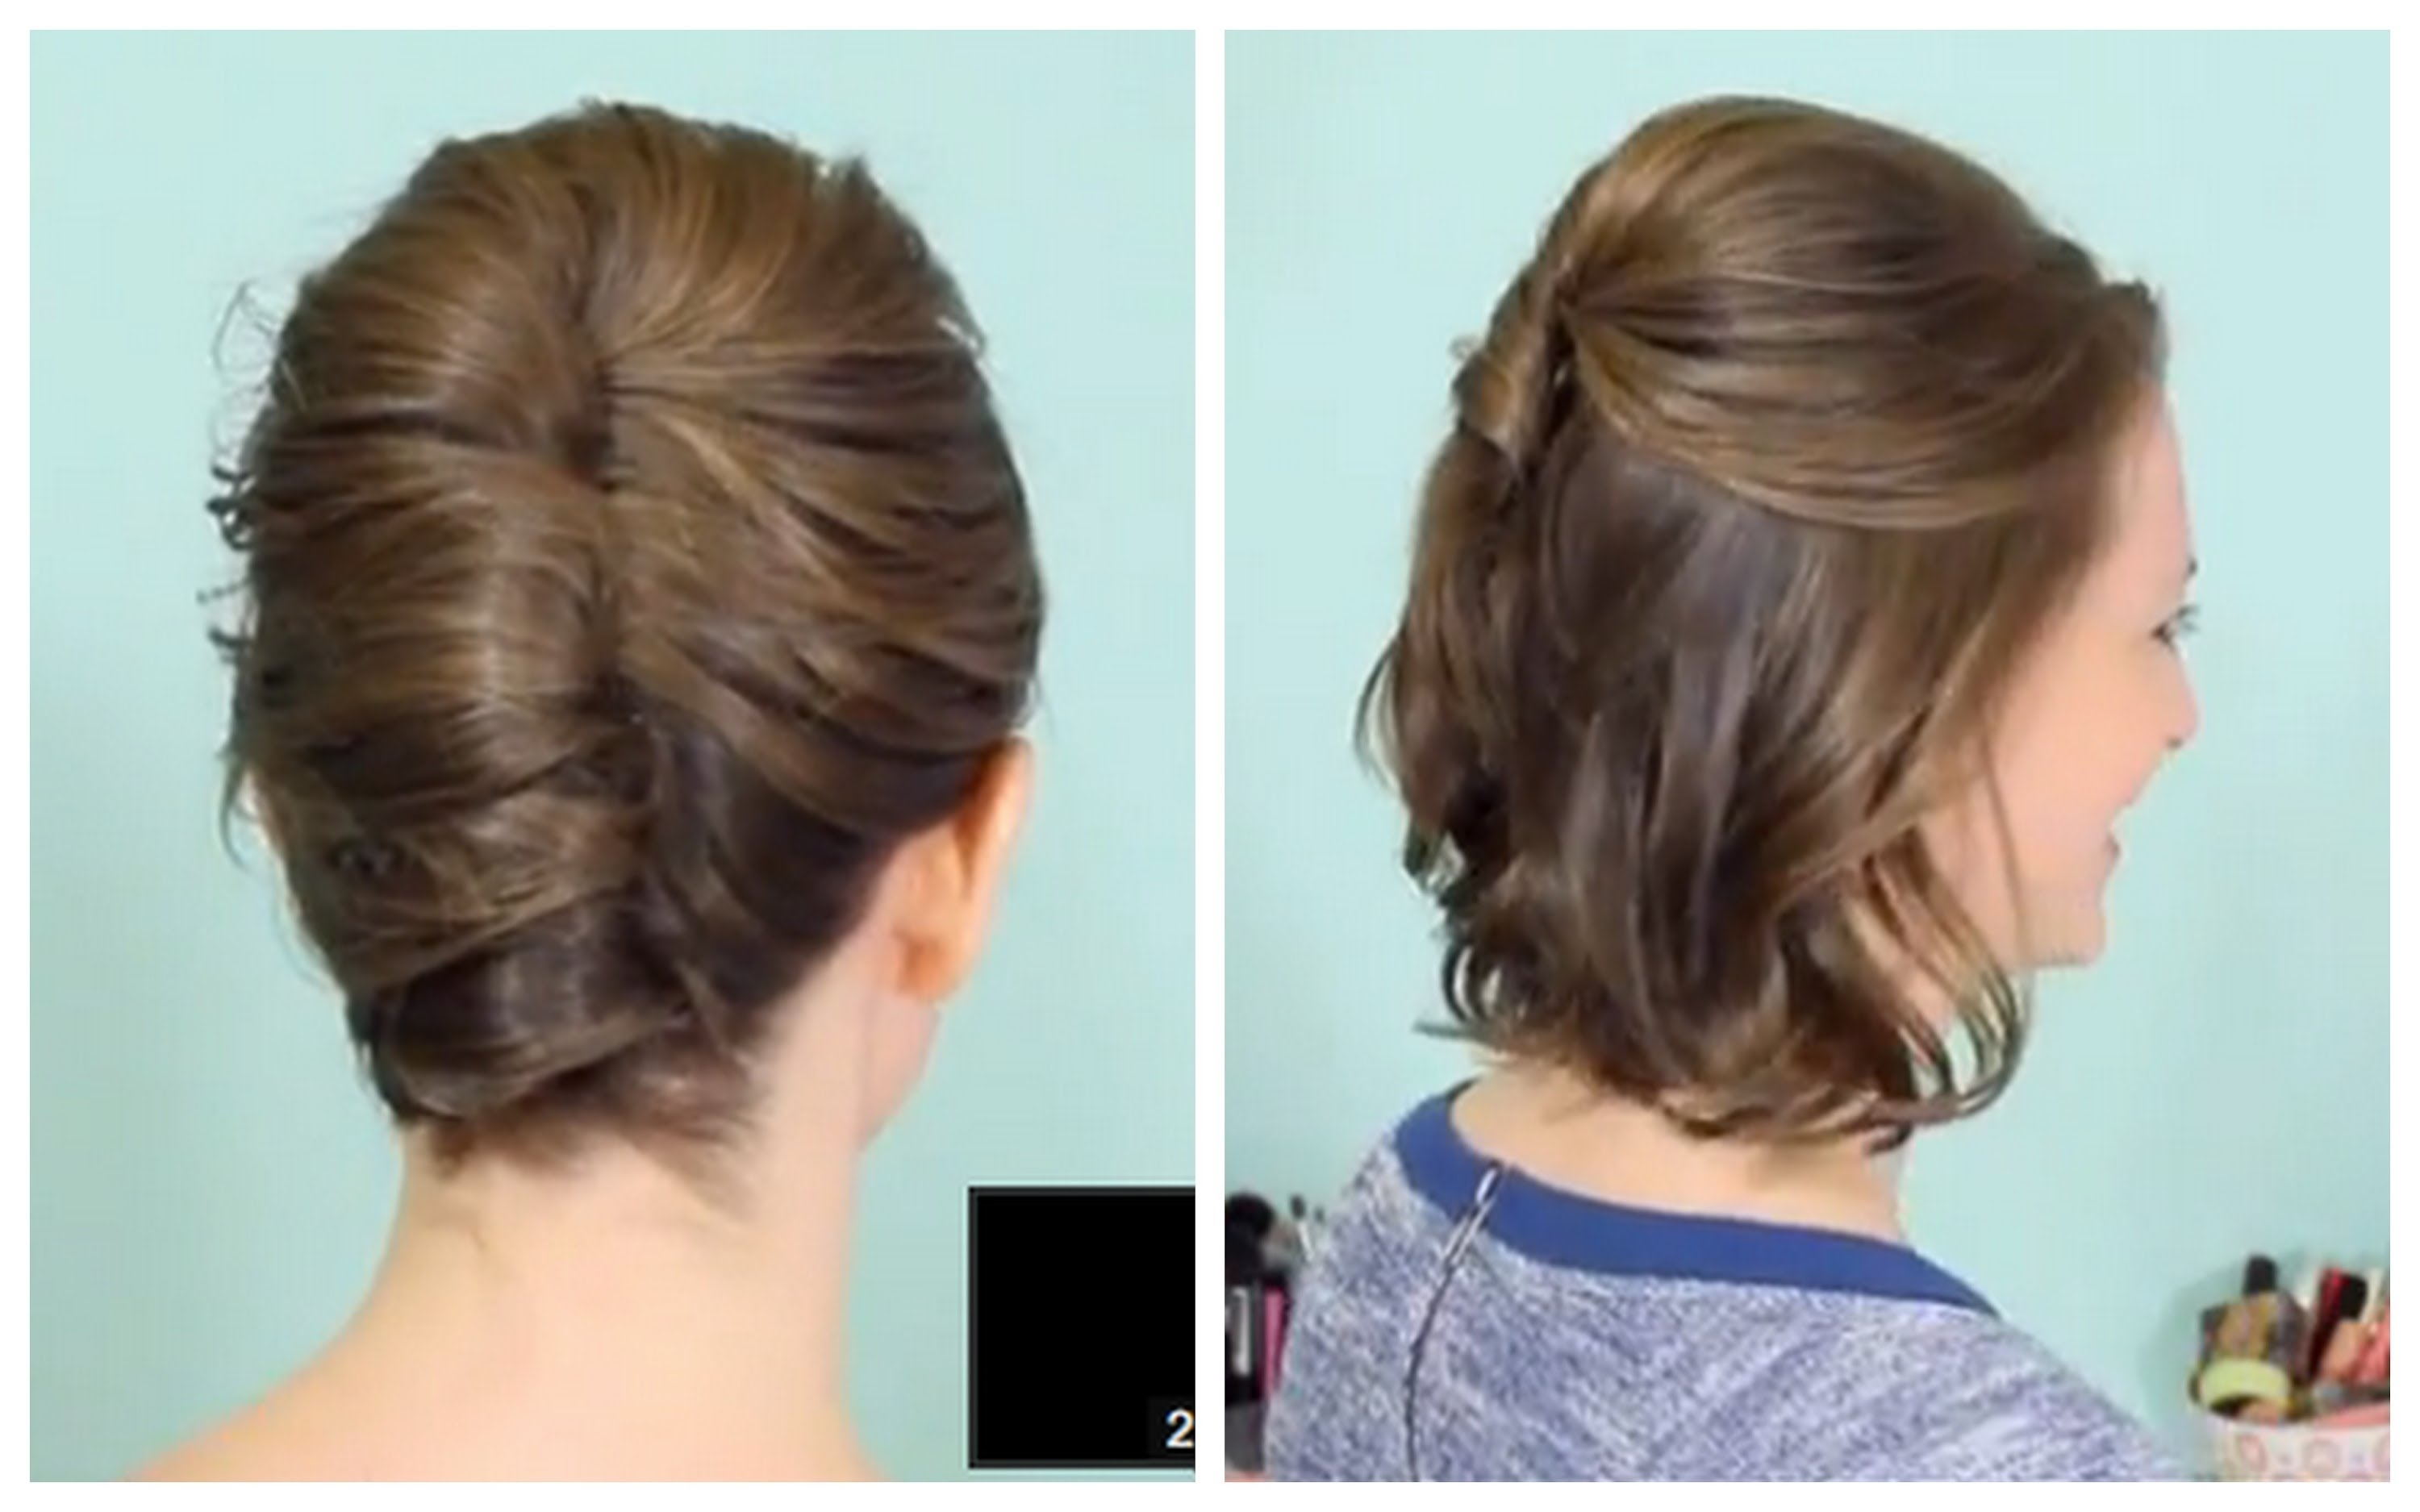 Easy Updo Hairstyles For Short Hair French Twist Half Updo For Short Throughout Half Updo Hairstyles For Short Hair (View 6 of 15)